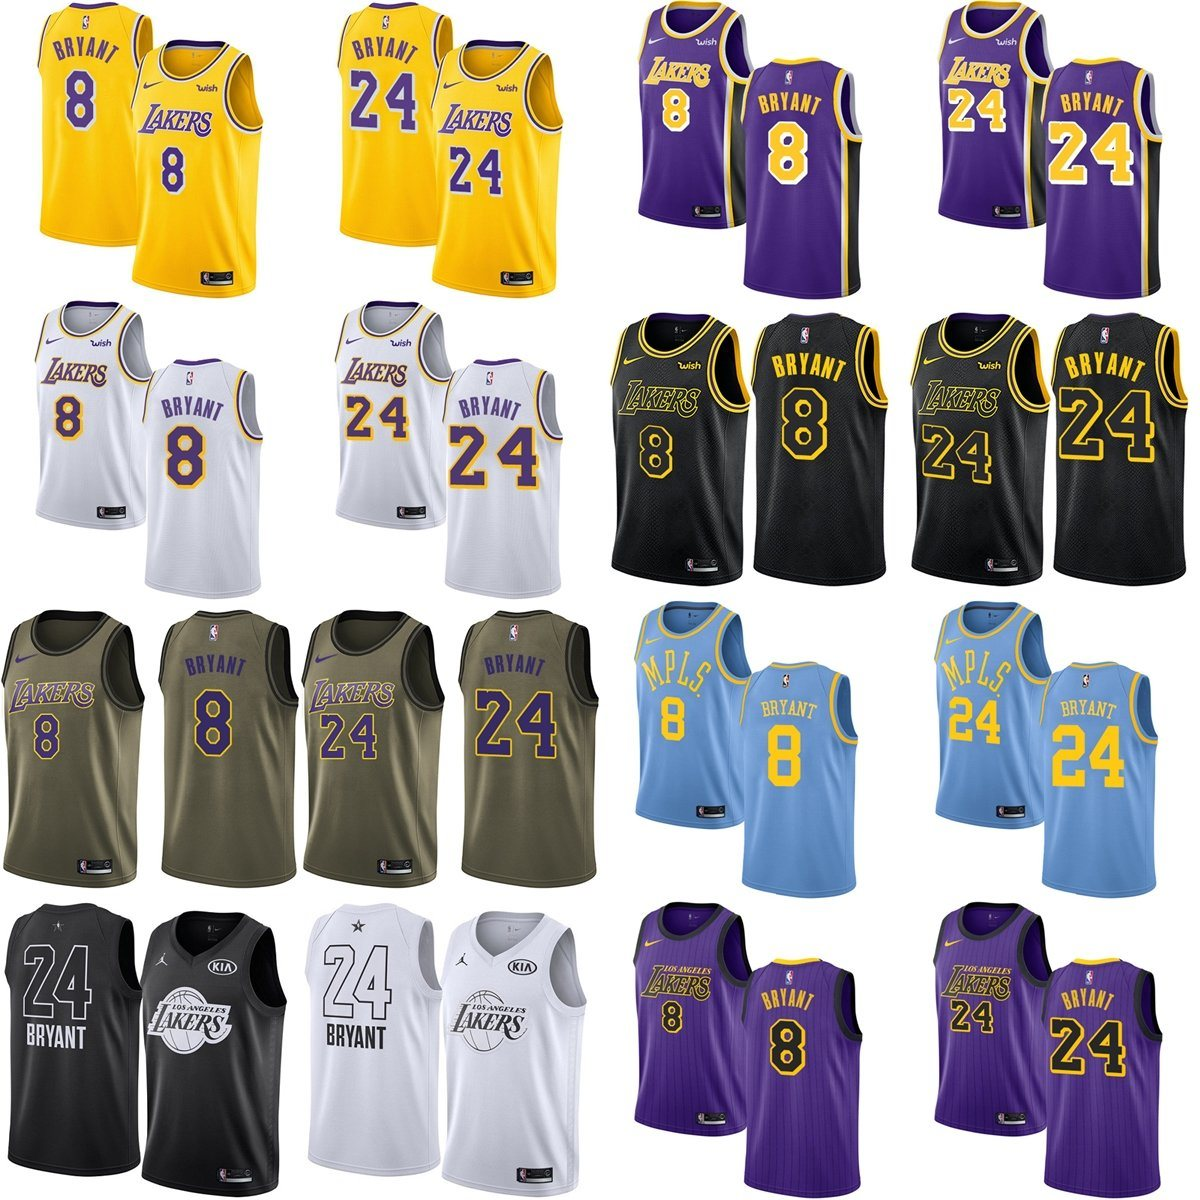 lakers away jersey